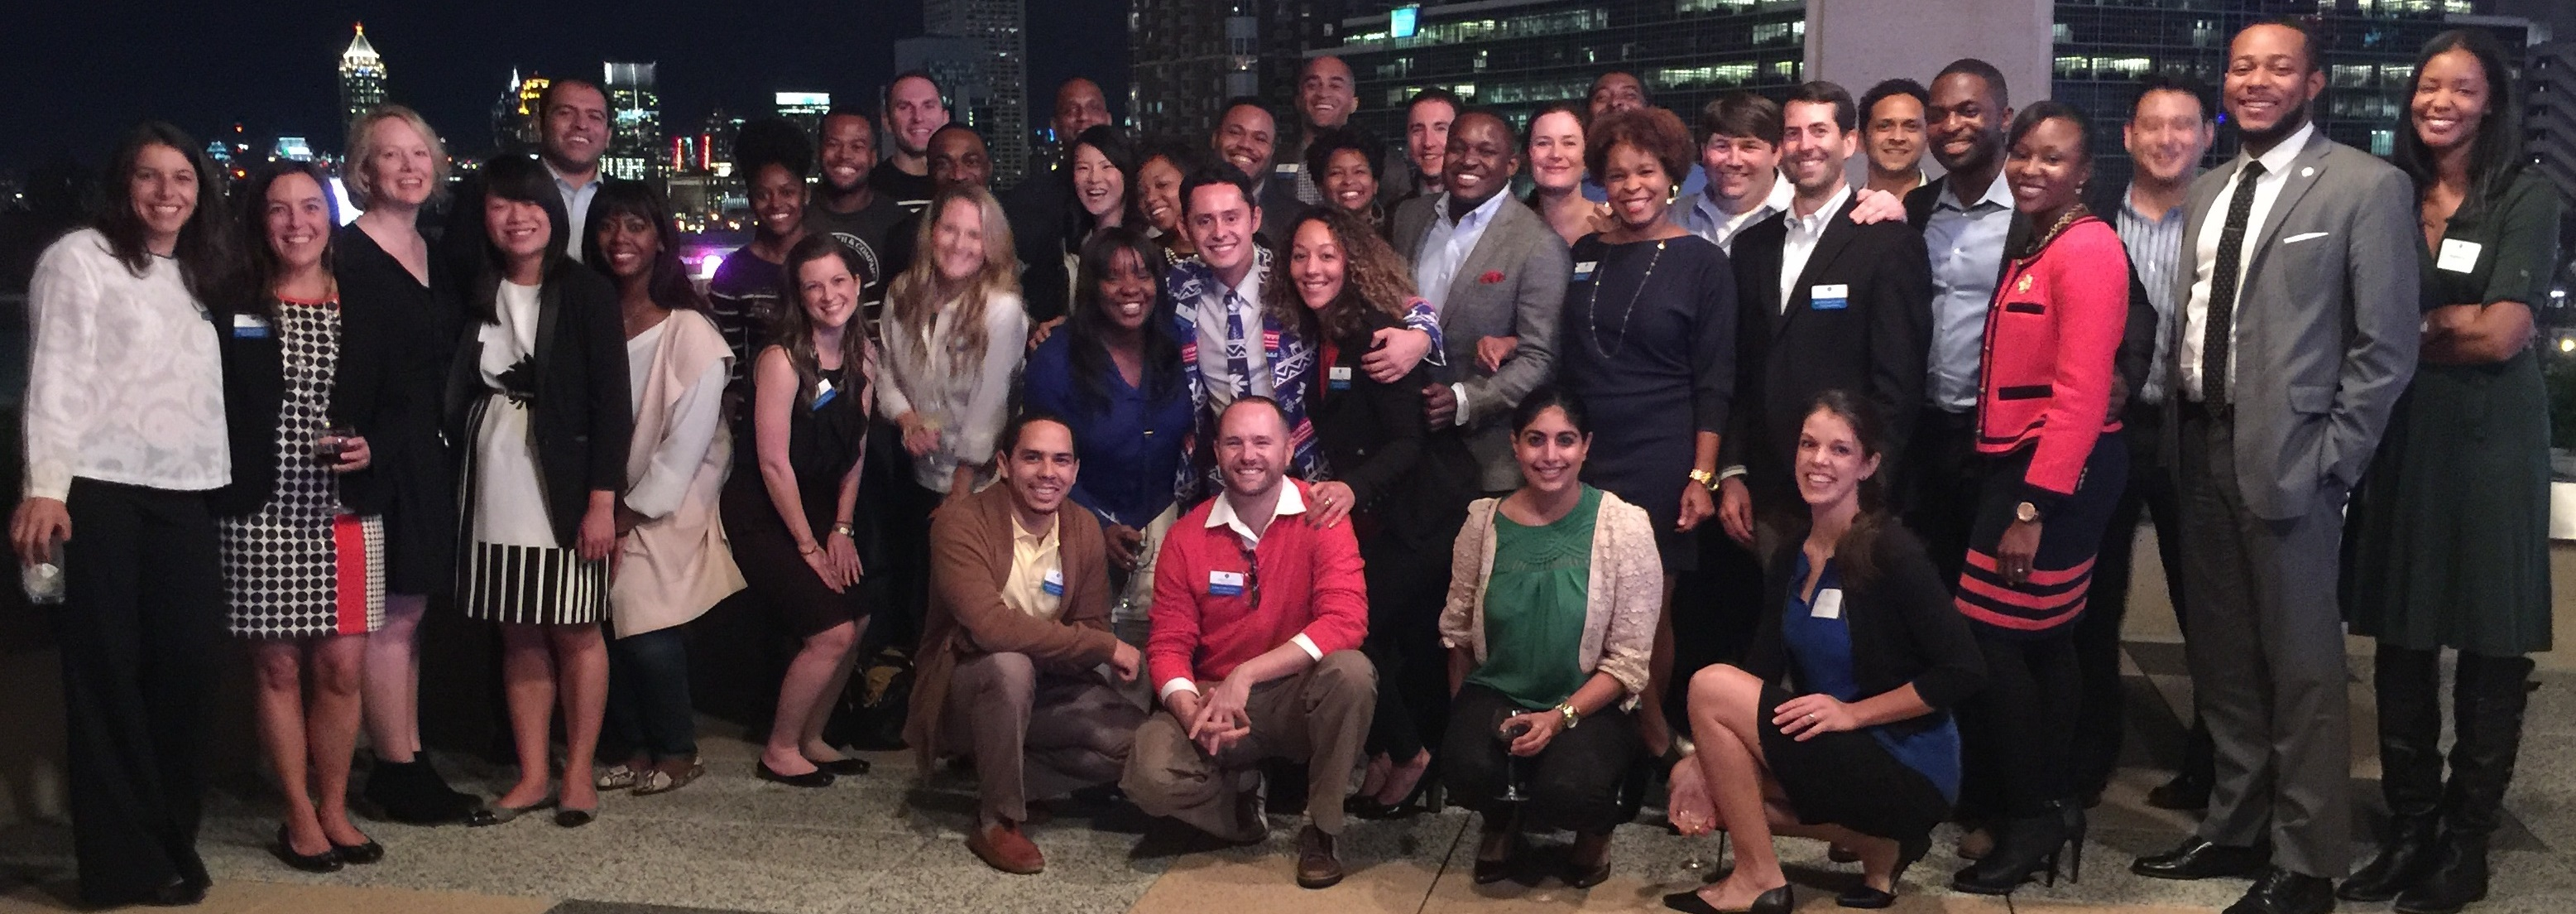 lead atlanta alumni leadership atlanta join the young professionals of lead atlanta